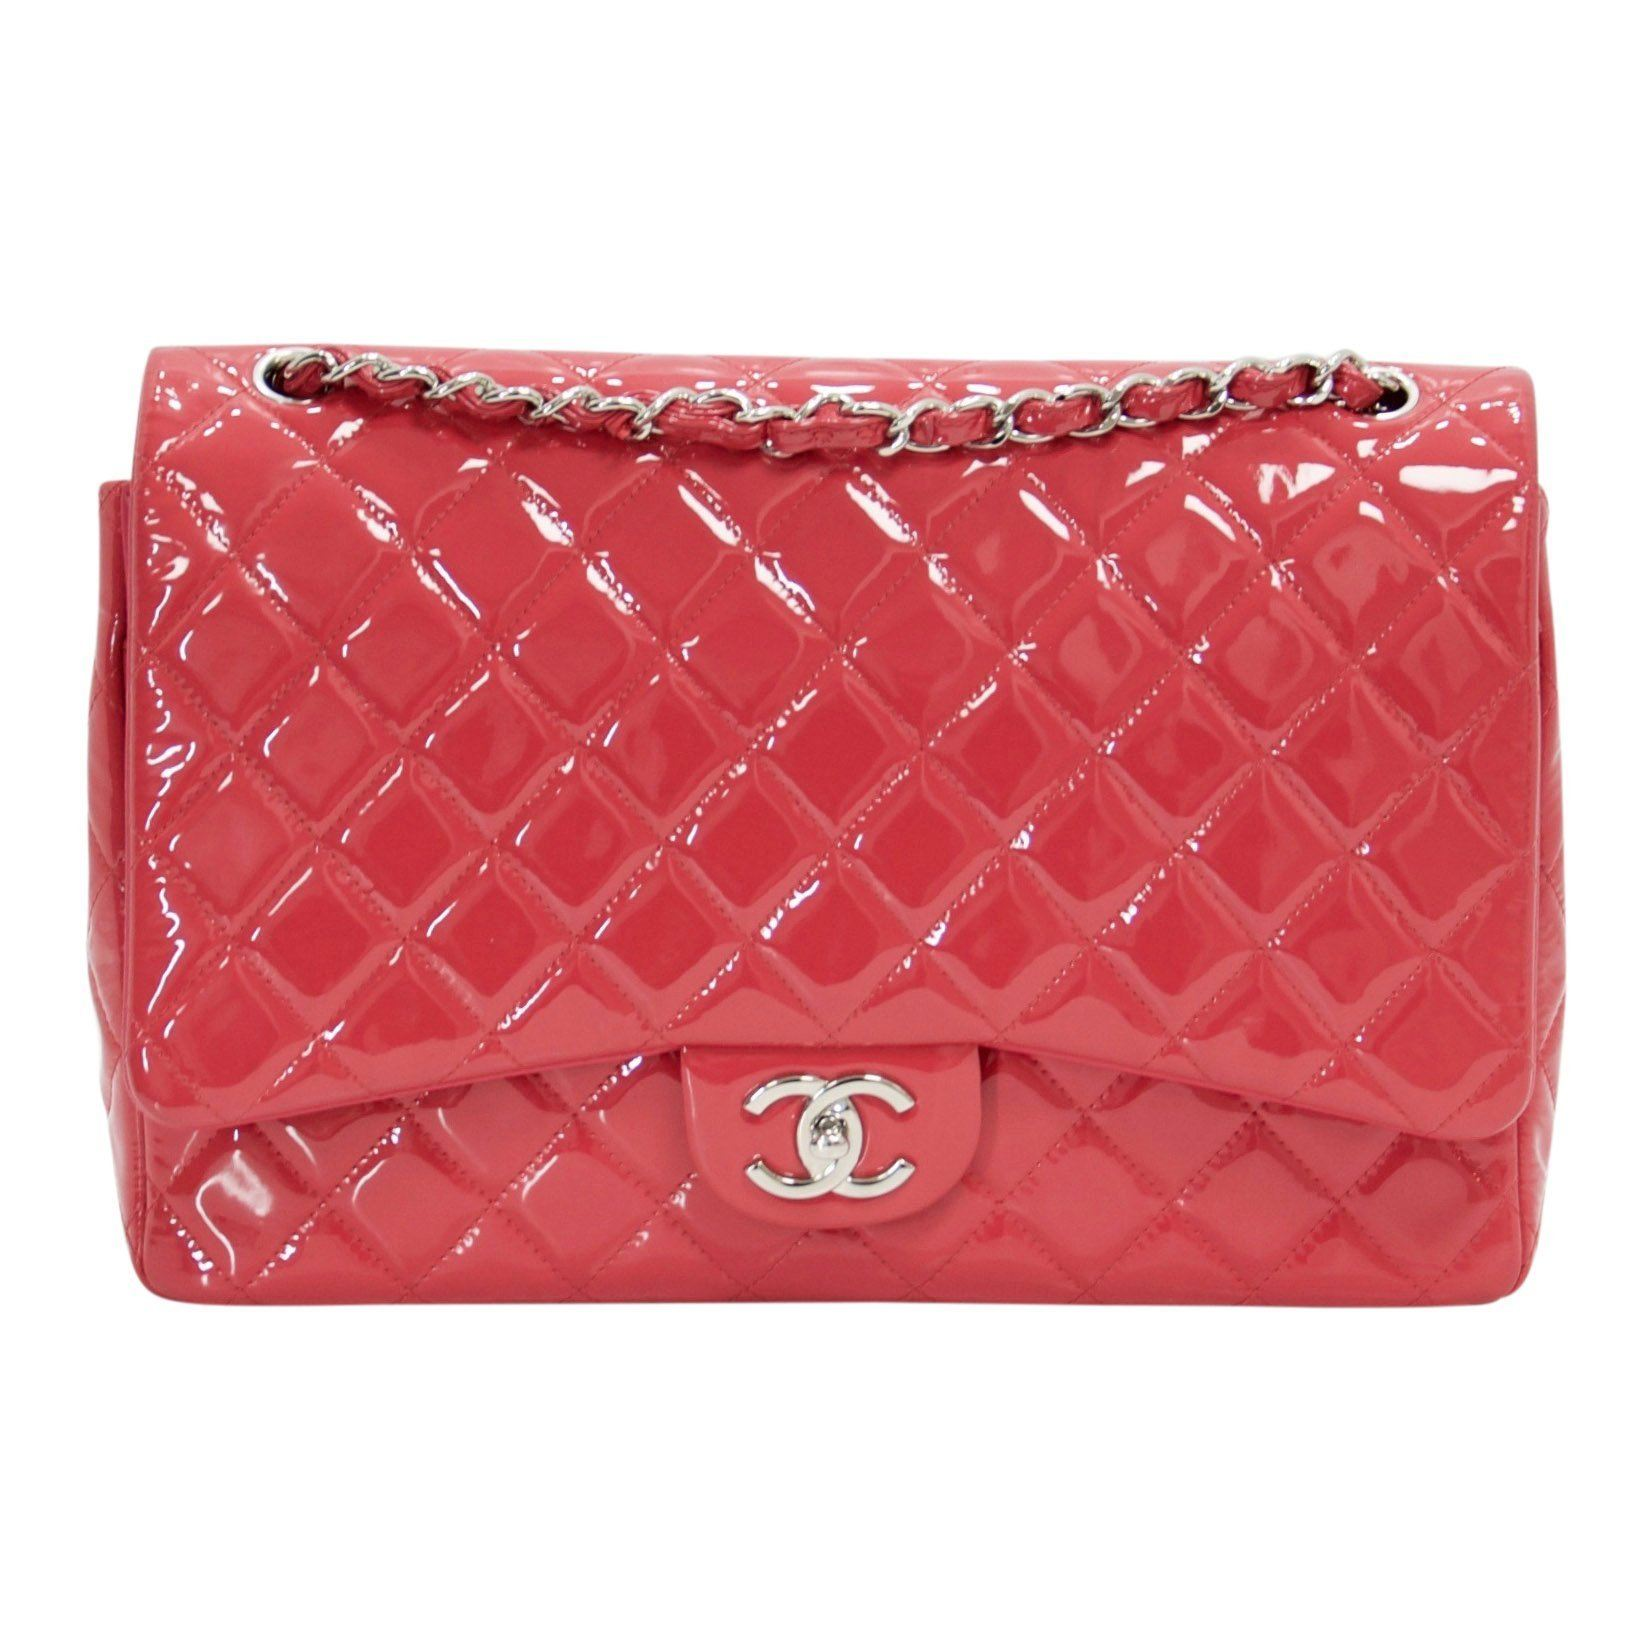 8a6b2b2ed6da9f Chanel Pink Patent Leather Classic Maxi Double Flap Bag Bags Chanel ...